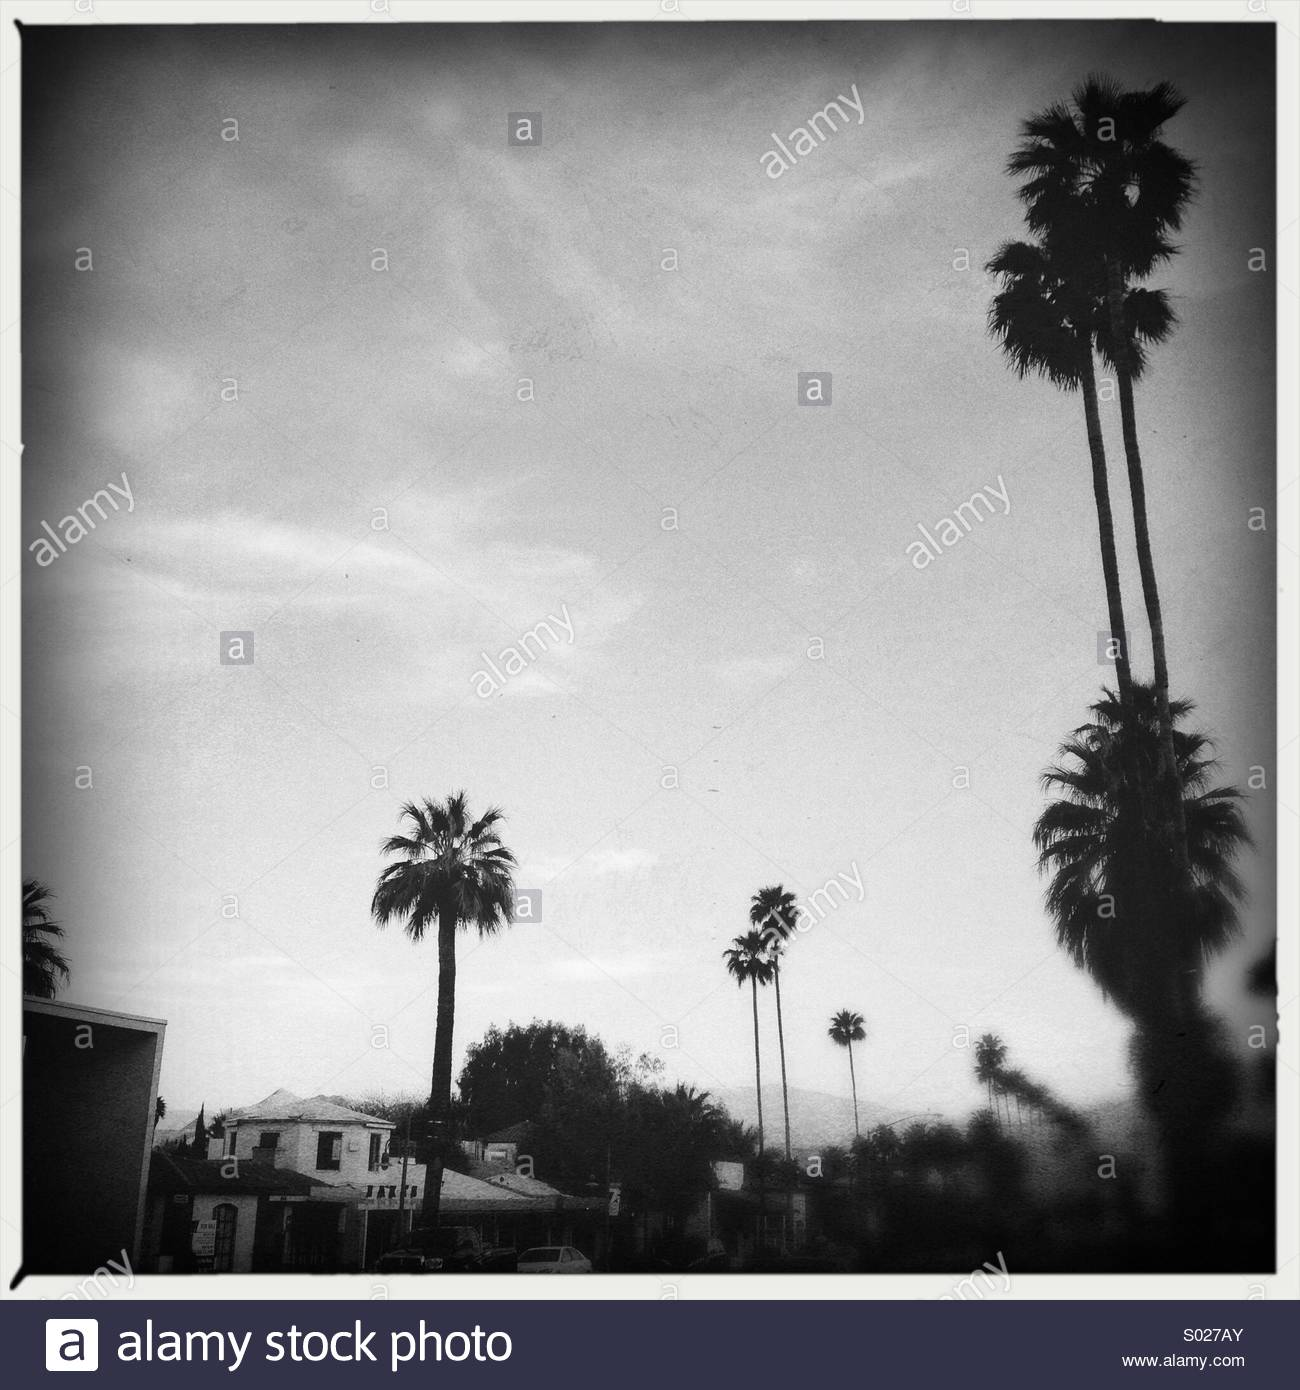 Nostalgic Summer Sweet Moment in Black & White on a road trip to Palm Springs California - Stock Image